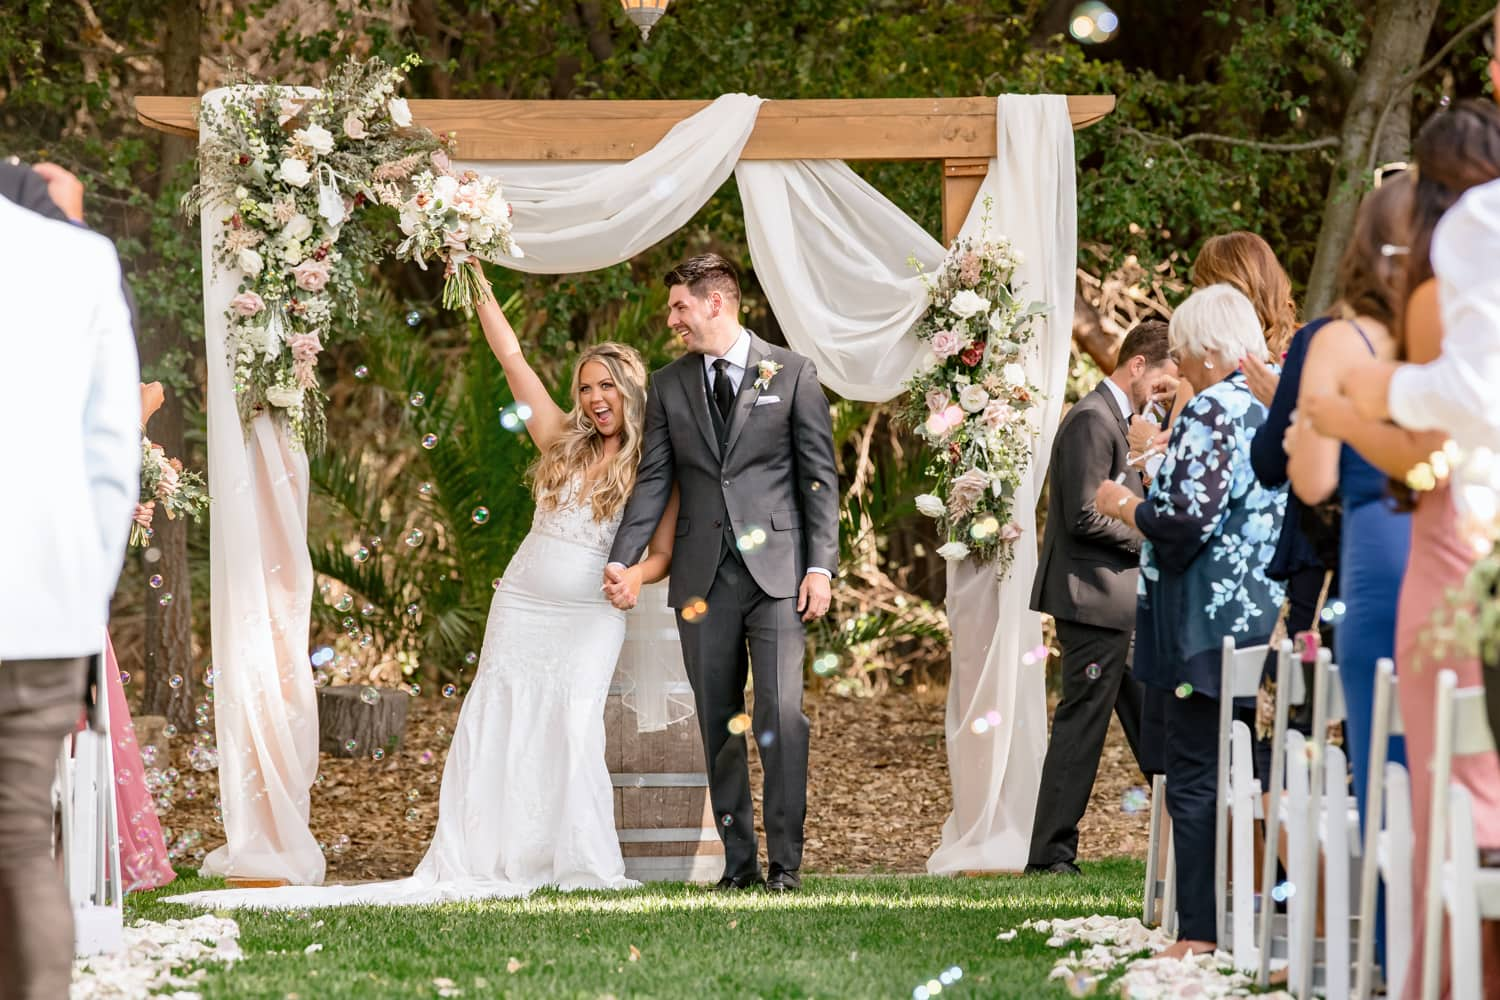 Couple just married at The Stone House Ceremony Site in Temecula, CA